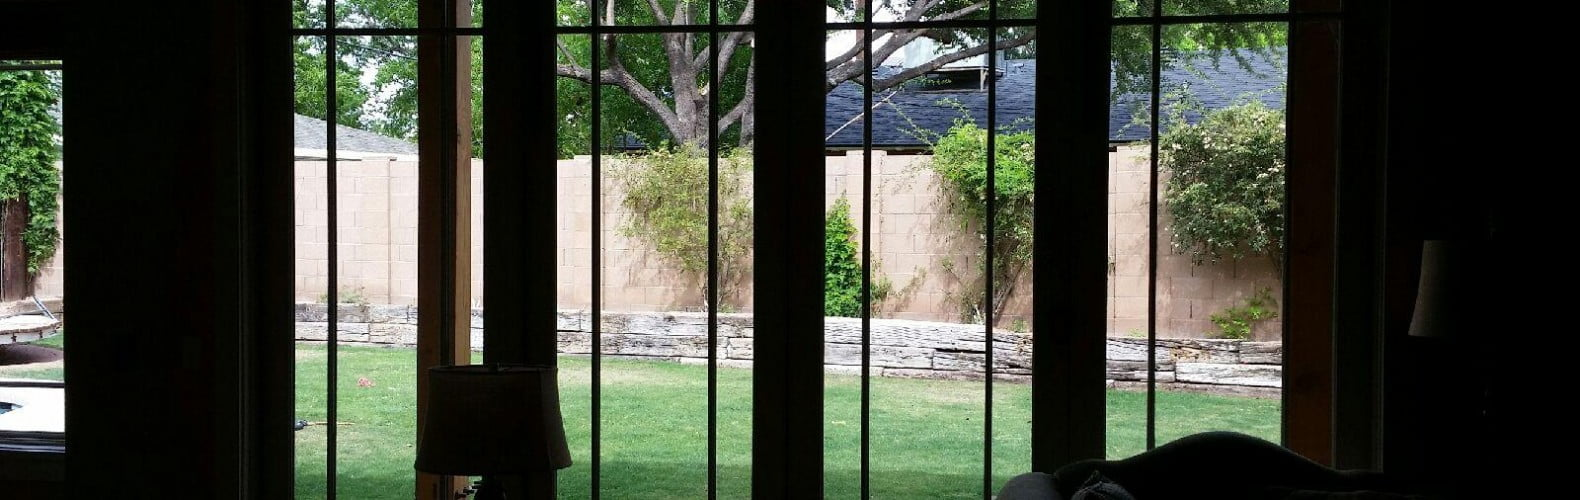 How to clean house windows - Enjoy The View With Clean Windows